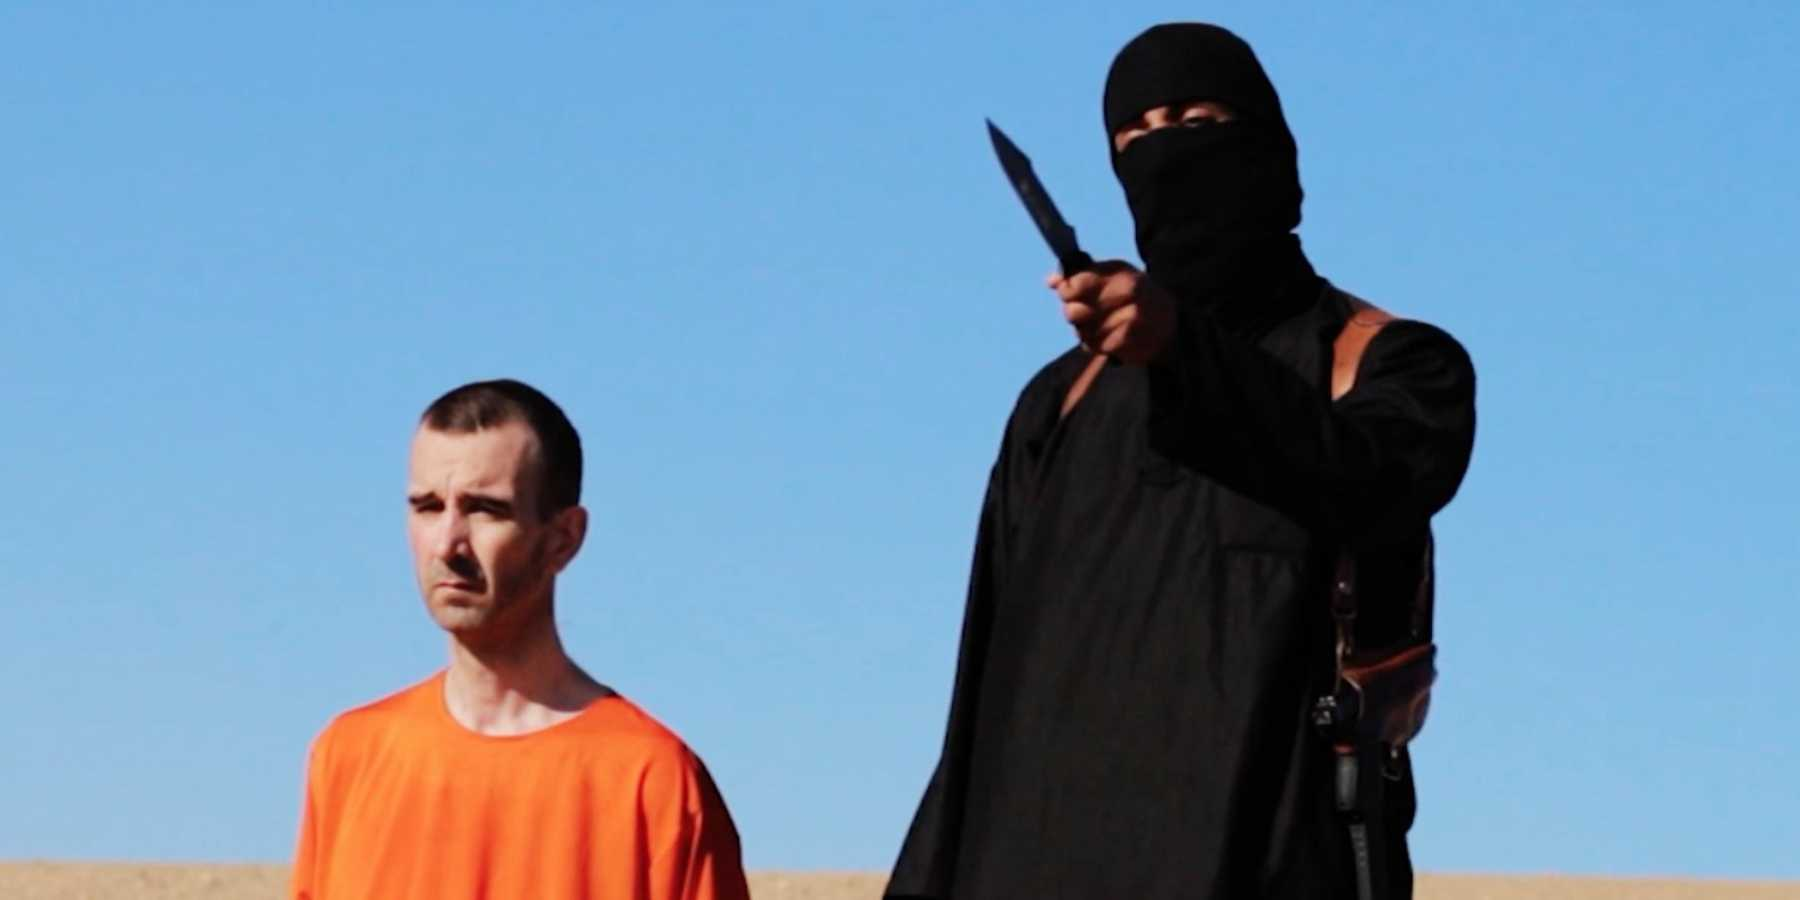 Third Western Captive David Haines Executed by ISIS | ISIS